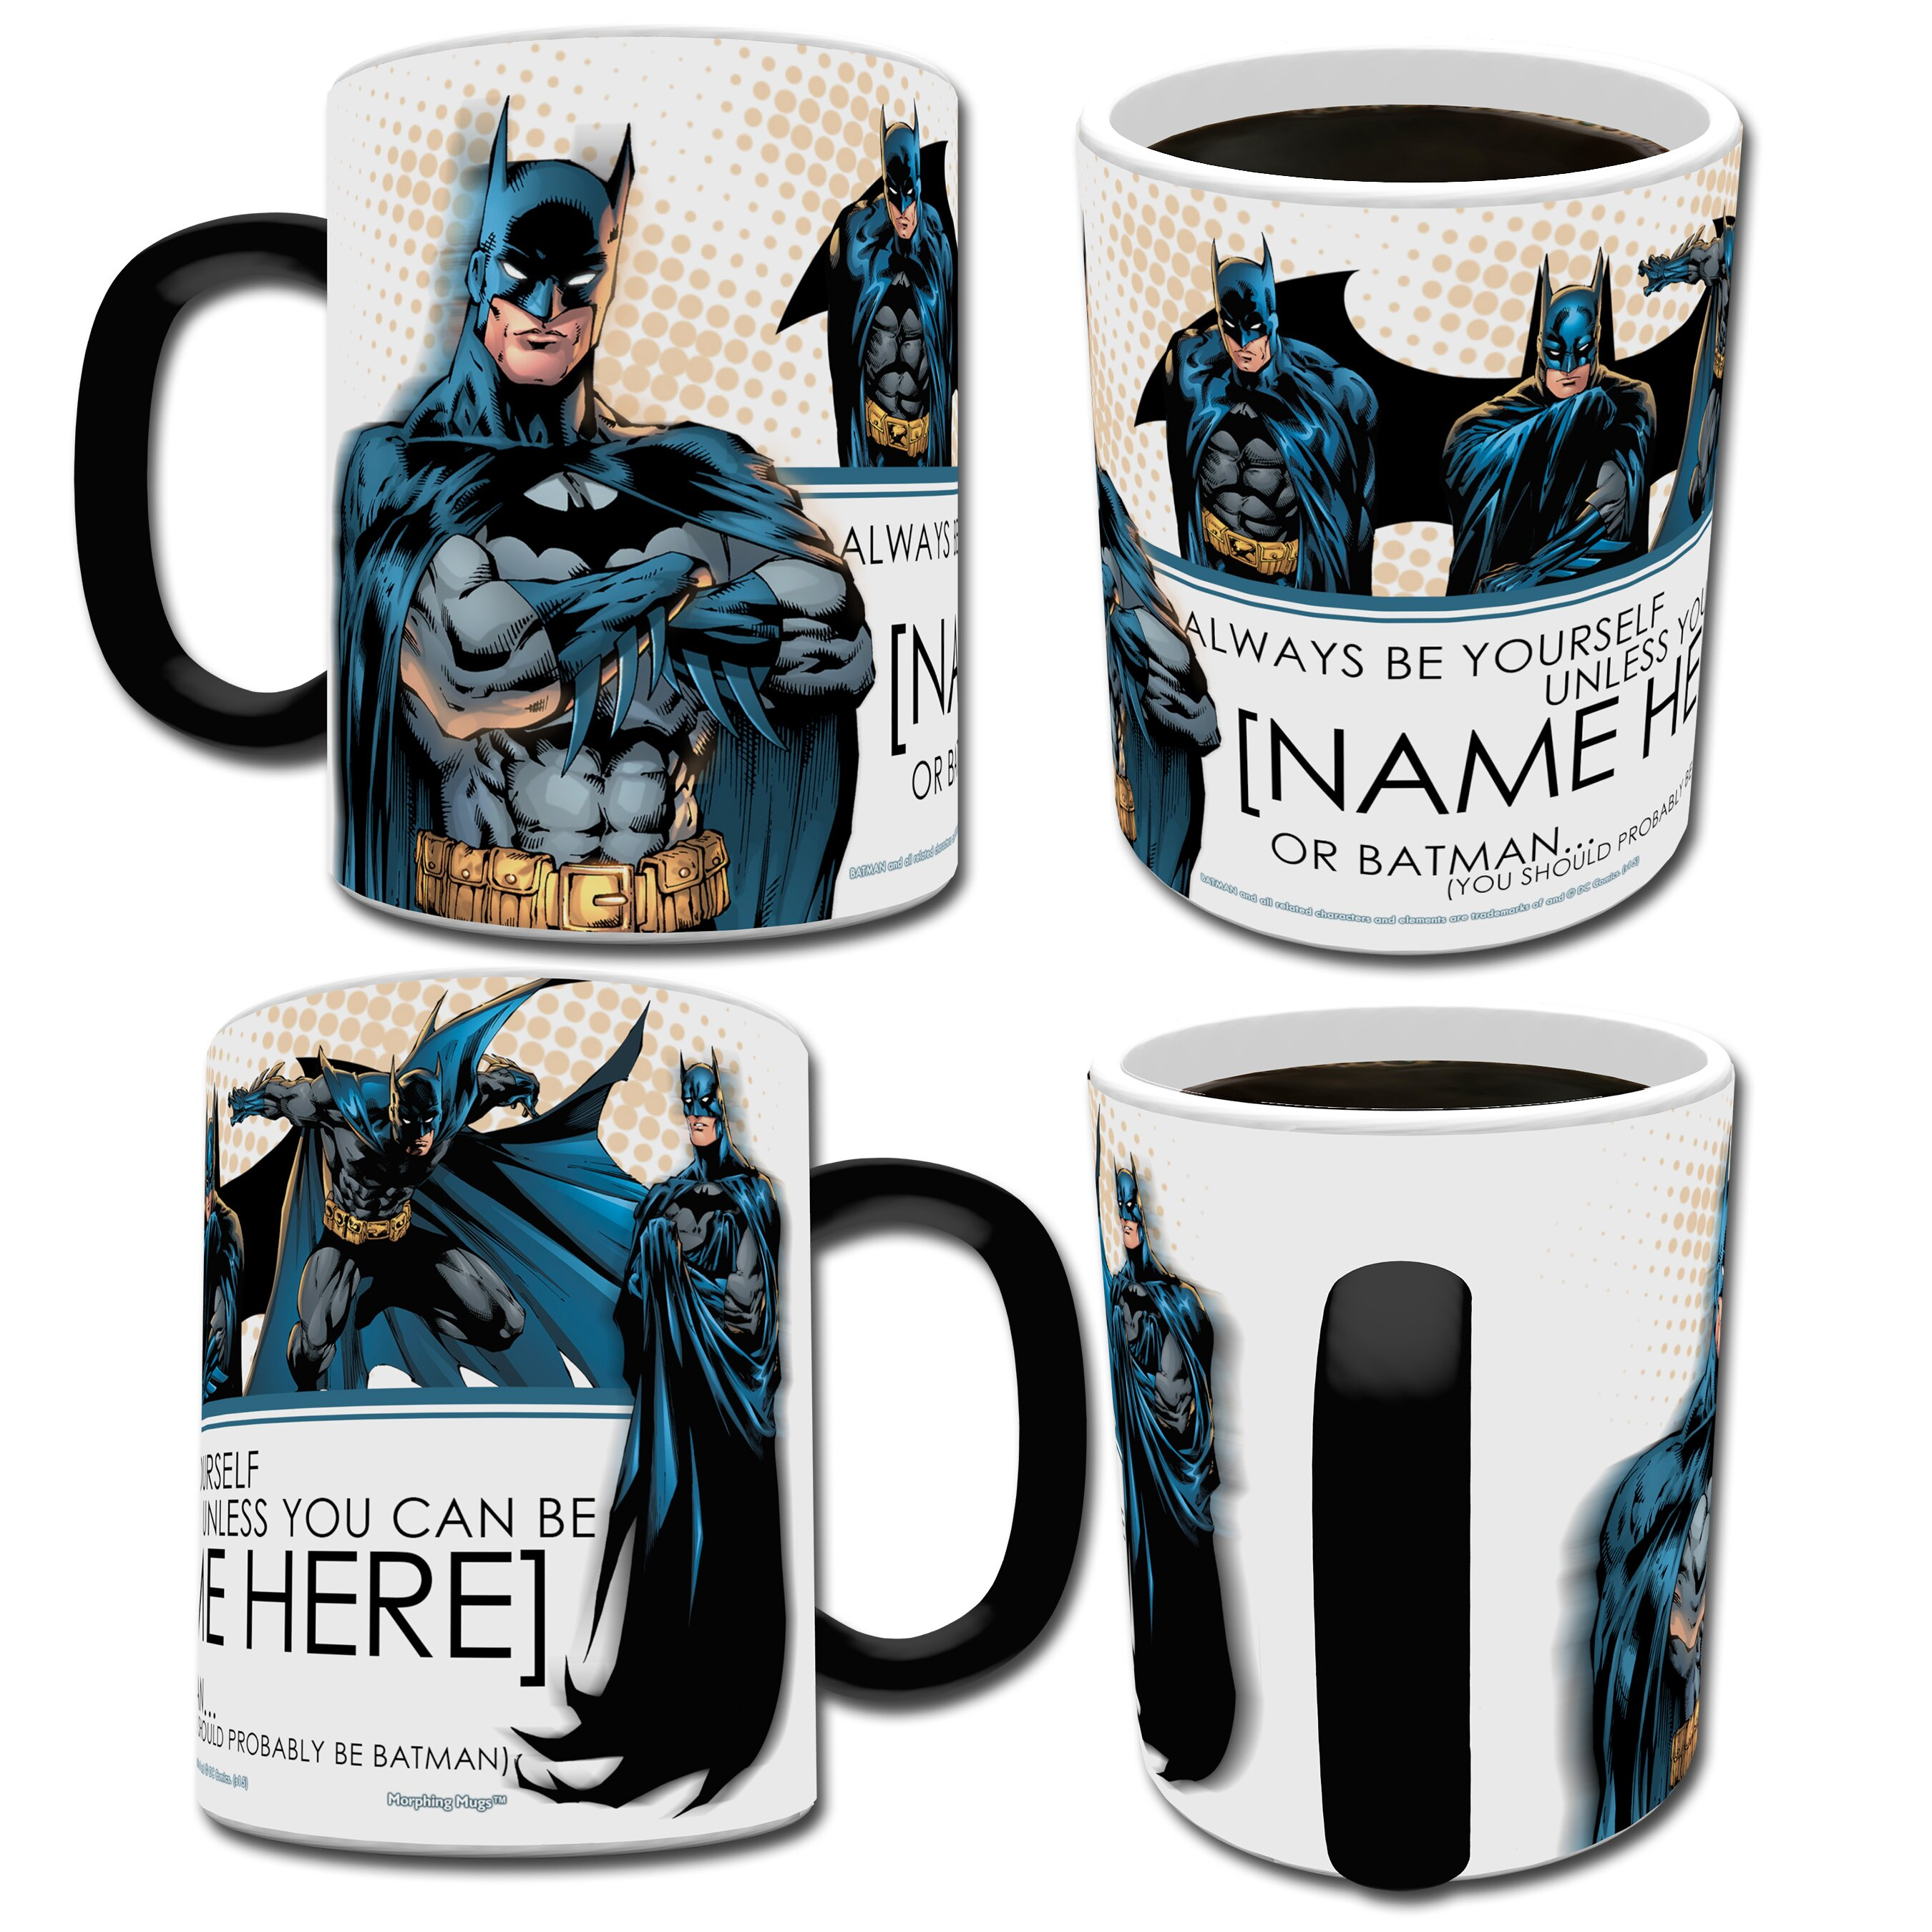 morphing mugs batman dc comics justice league personalized heat sensitive coffee mug wayfair. Black Bedroom Furniture Sets. Home Design Ideas